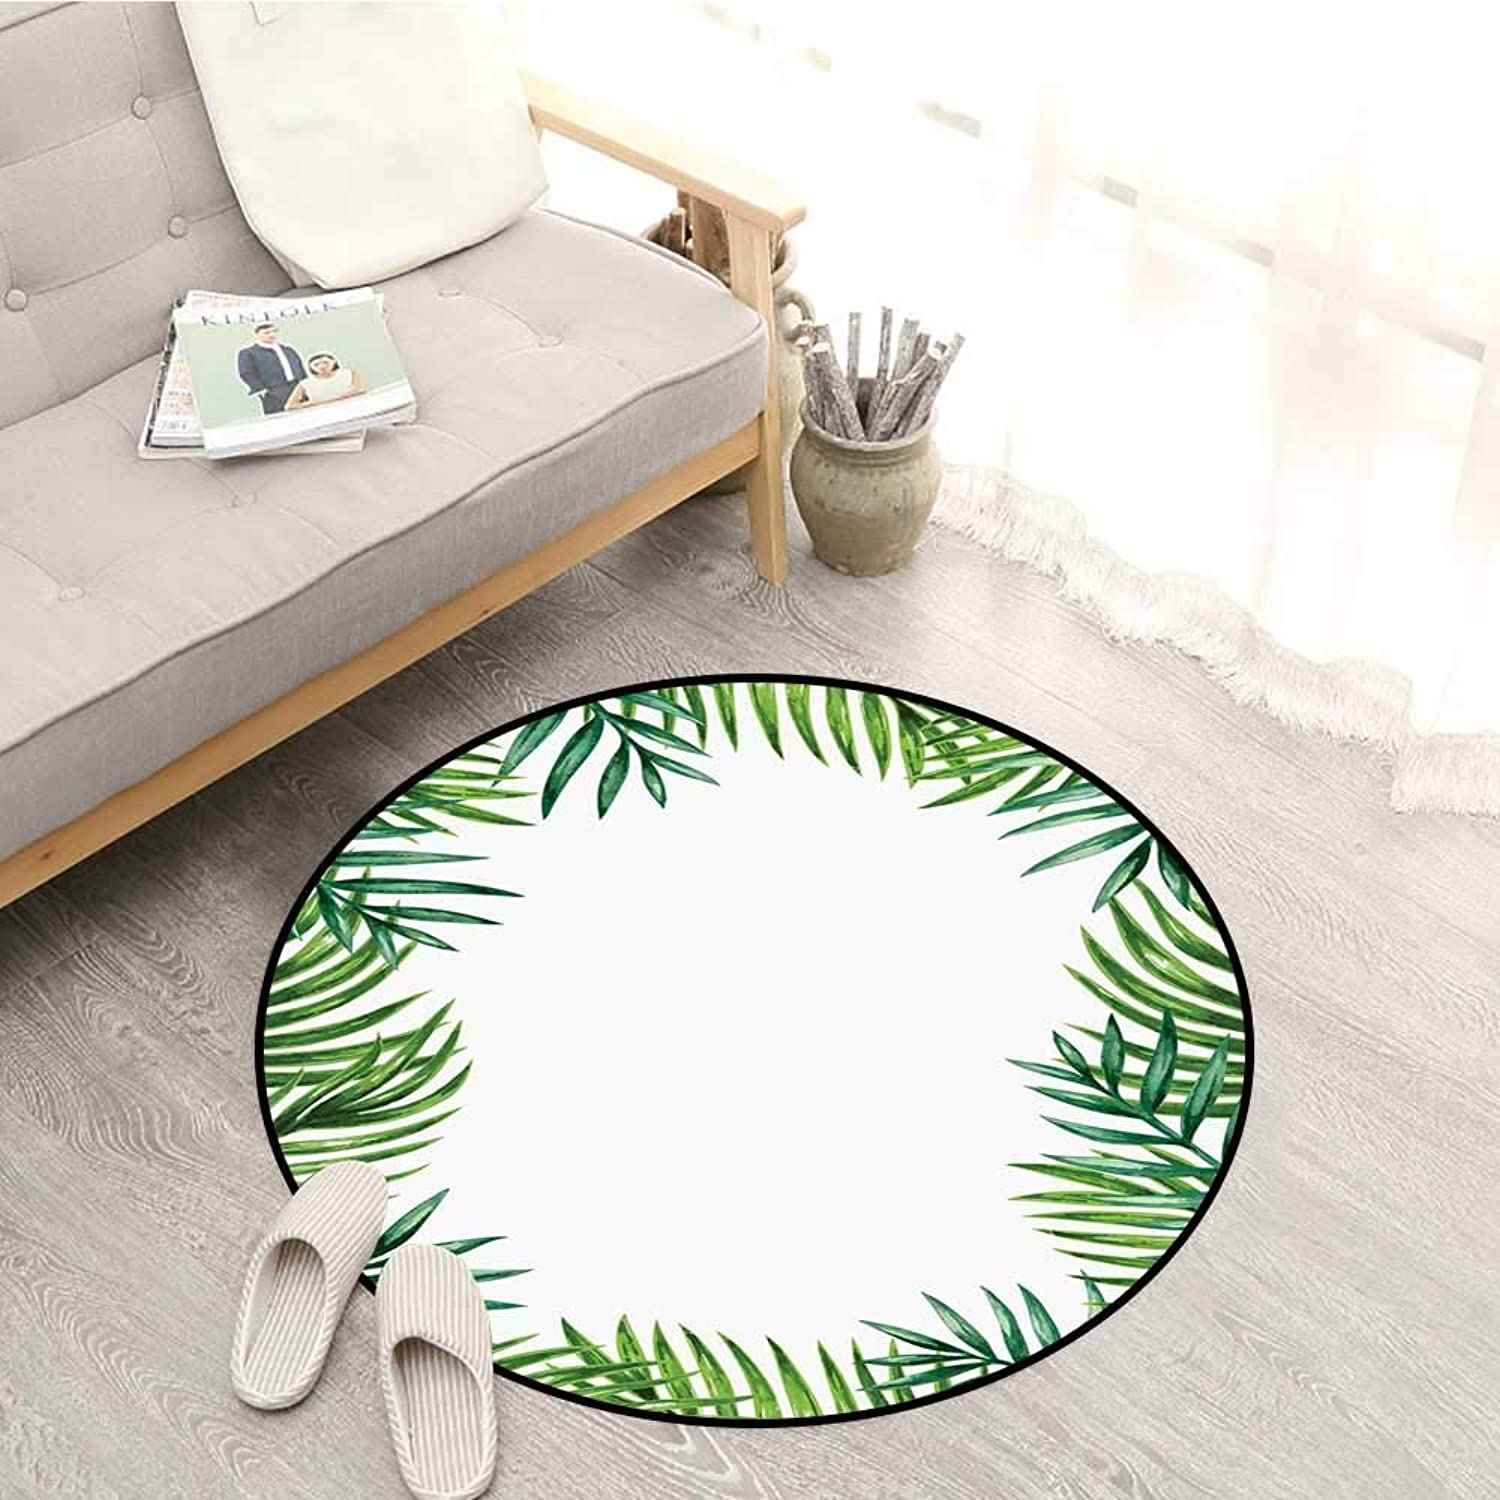 Green Leaf Skid-Resistant Rugs Frame with Fresh Leaves Botanical Natural Artwork Environment Forest Sofa Coffee Table Mat 4'11  Jade Green Lime Green